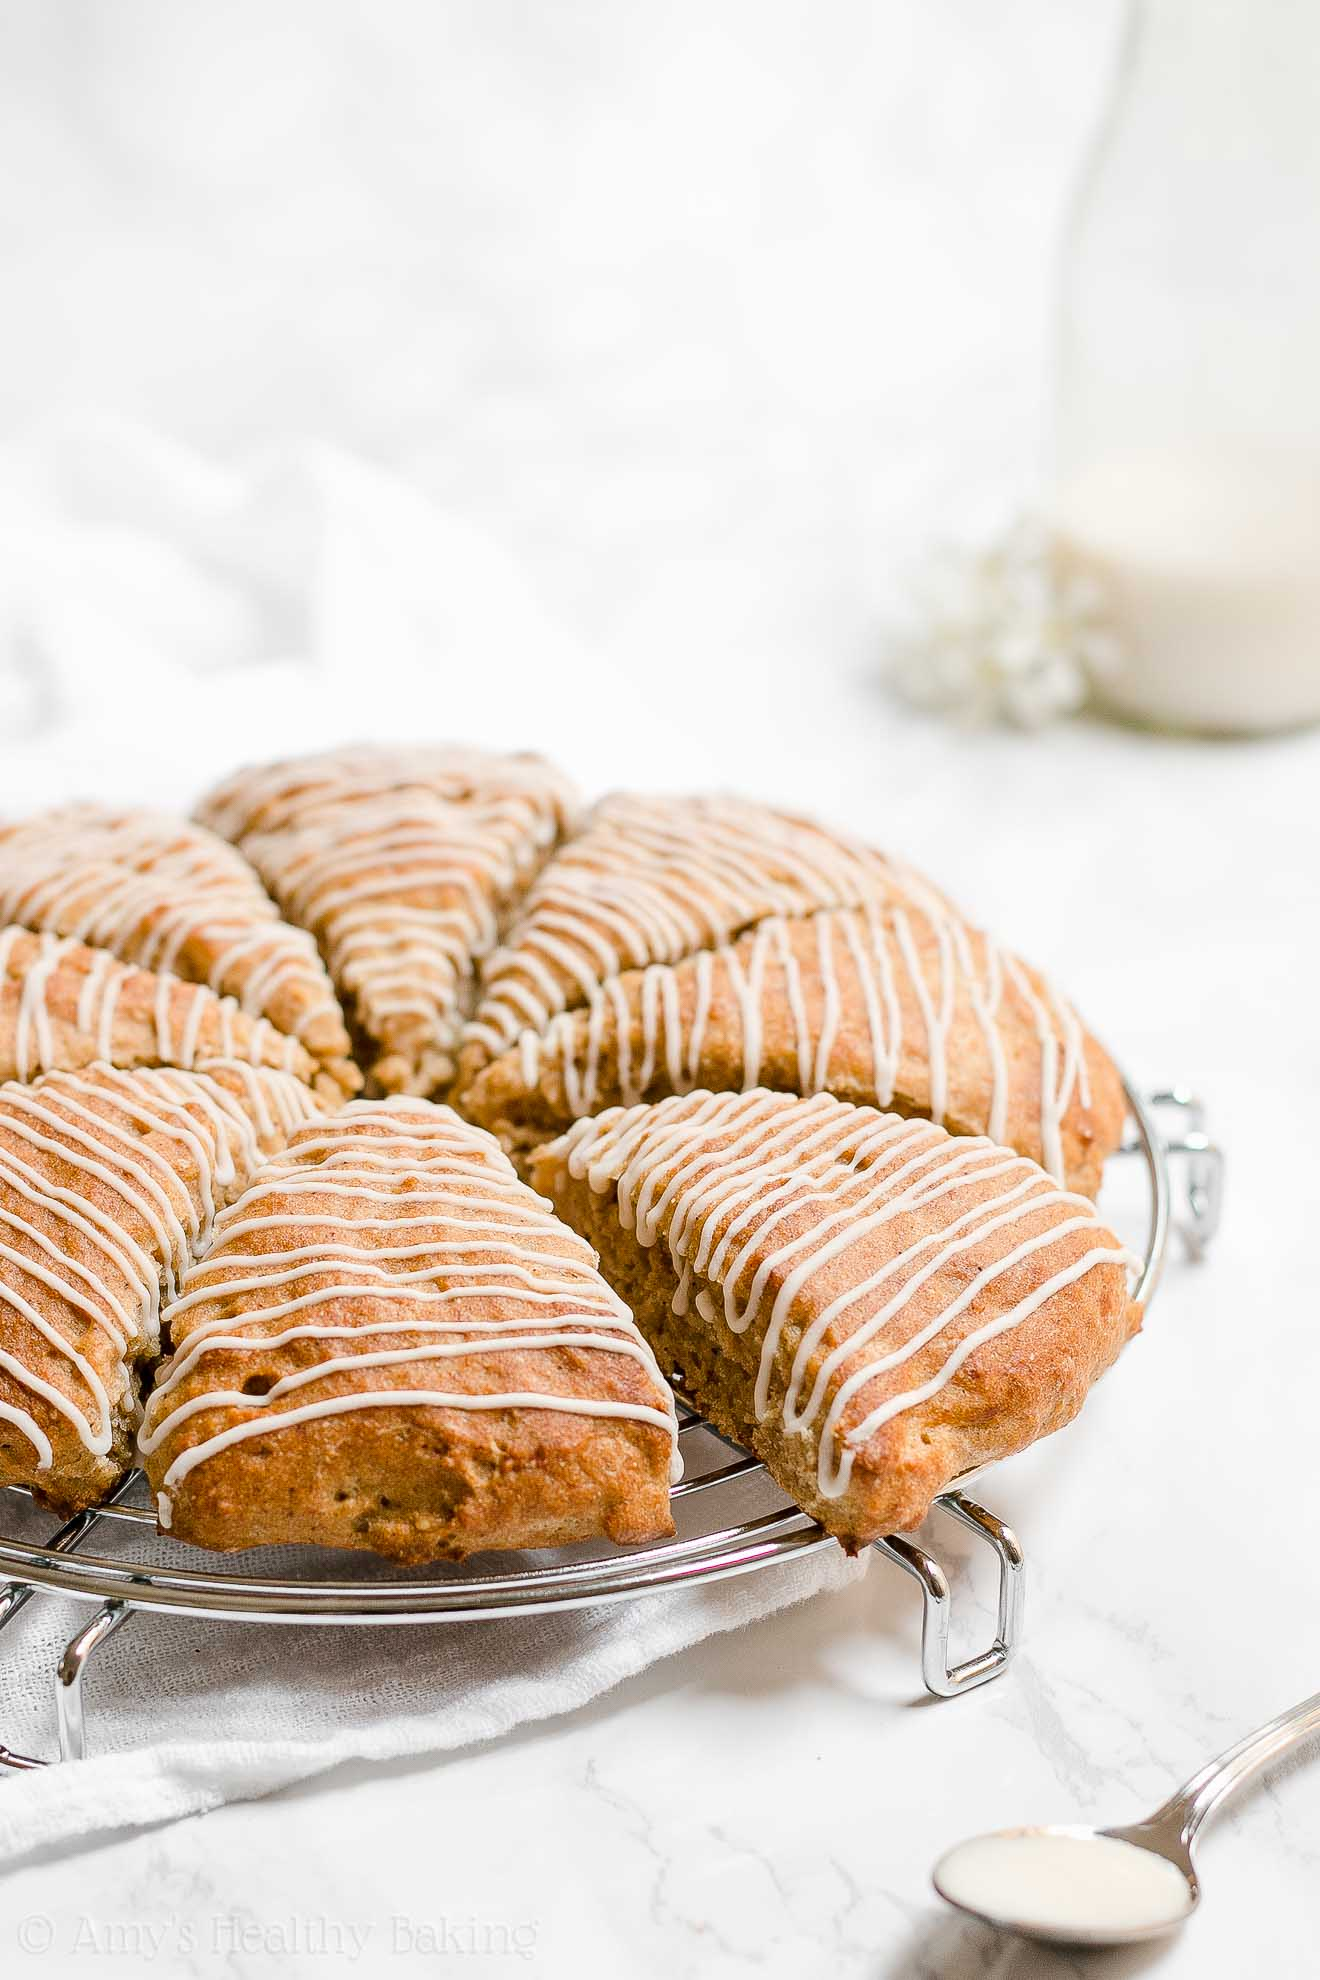 Healthy Low Fat and Low Calorie Banana Buttermilk Scones